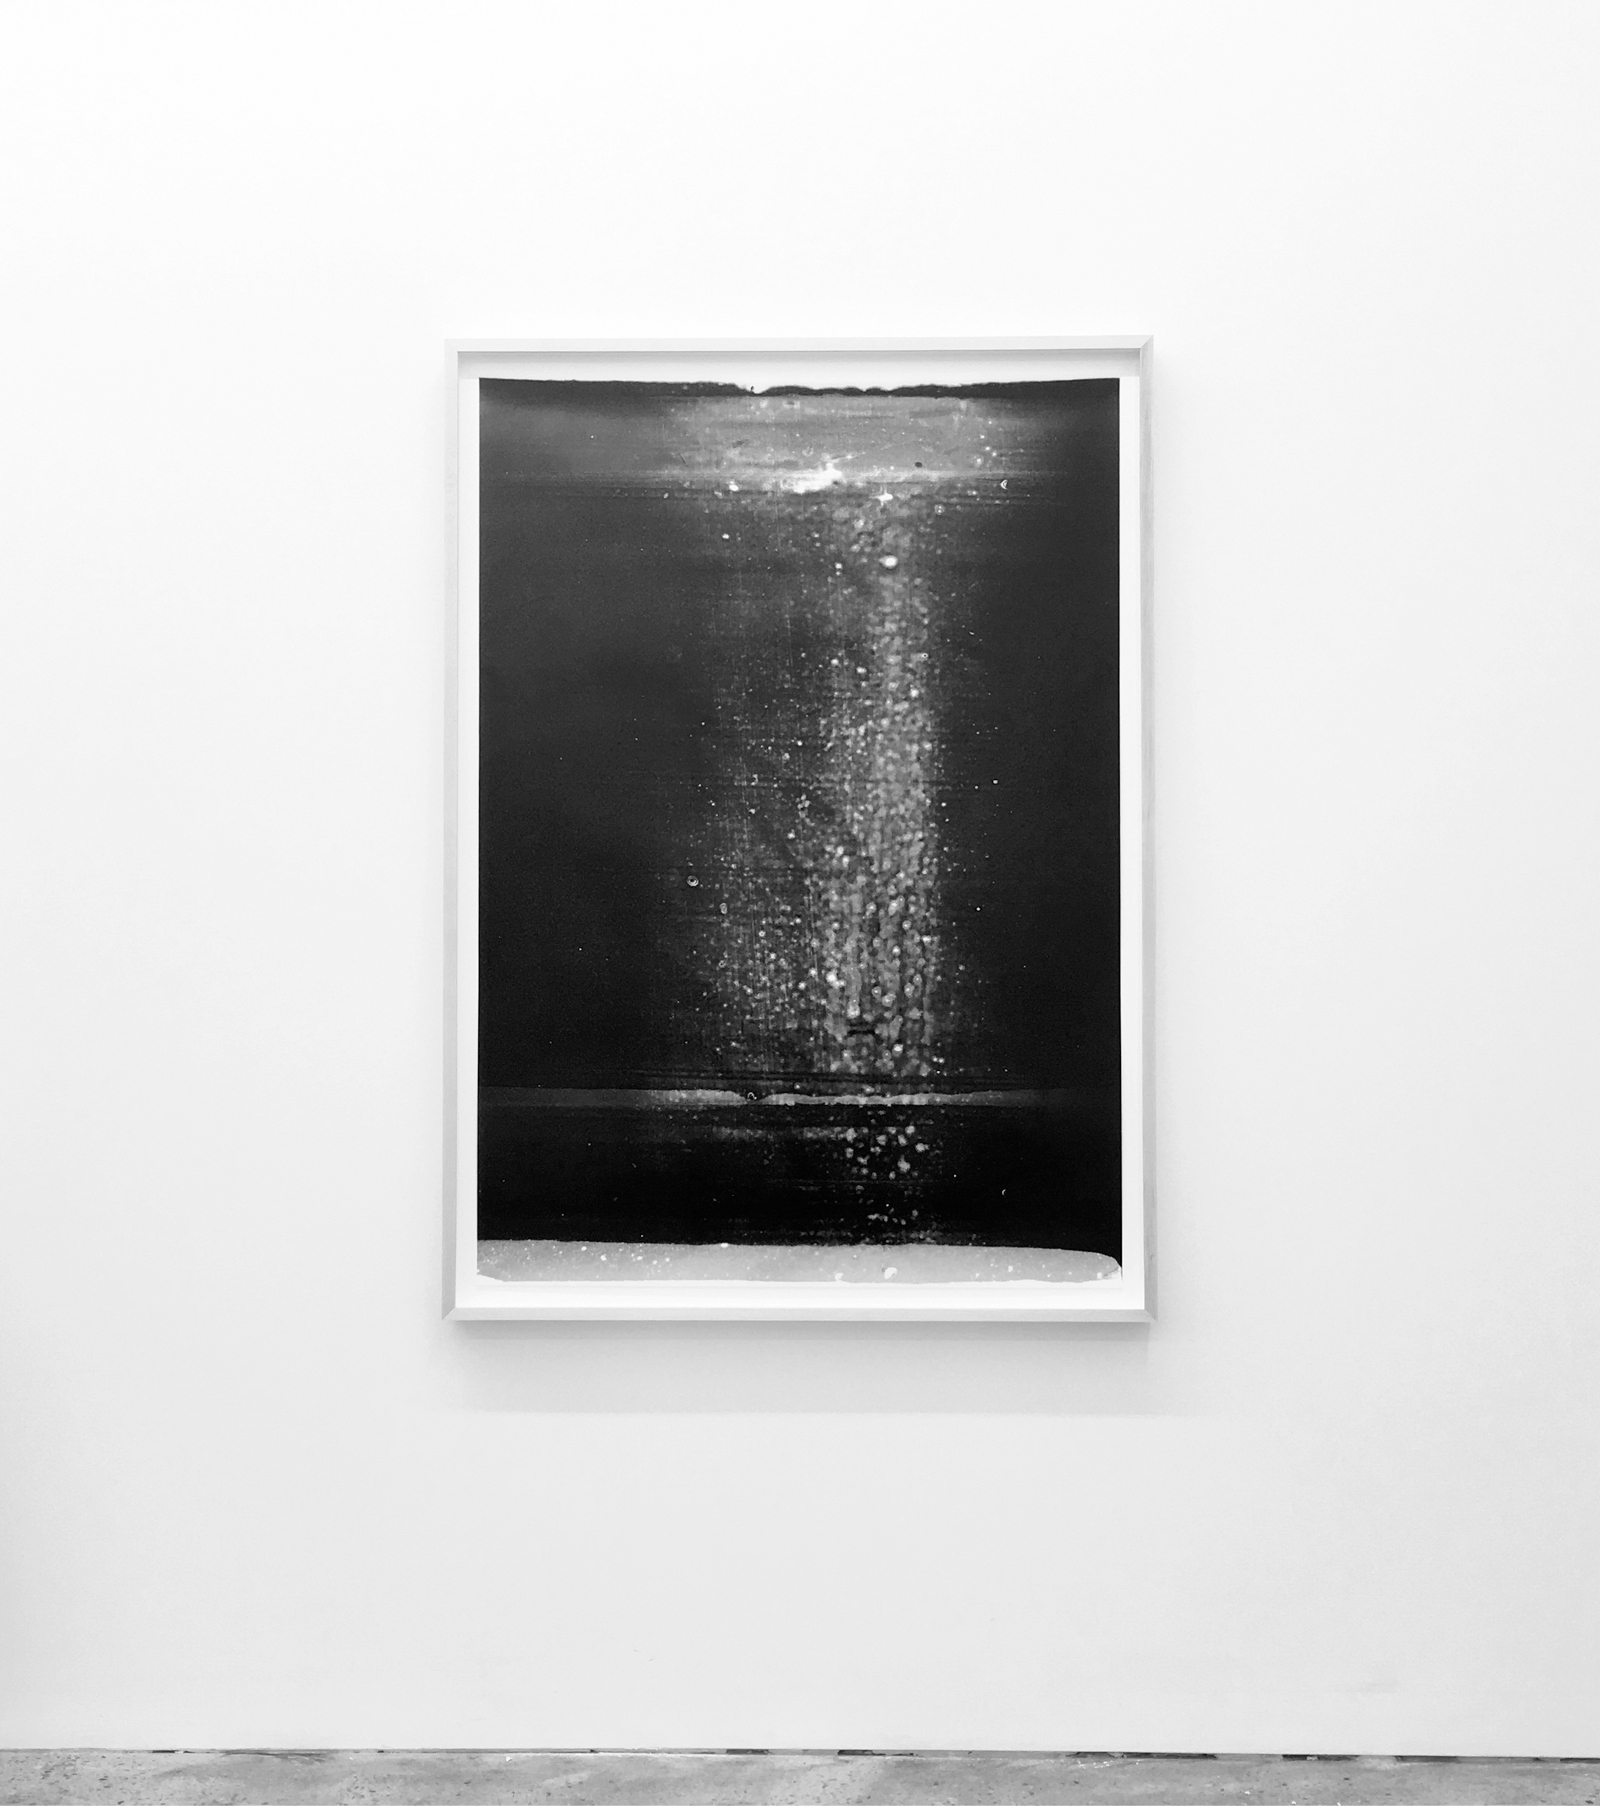 """Jim Verburg, Untitled (from the series Metaphysical Obstacles and The Acceptance of the Inevitable),  2016 ,  oil based paint on frosted Mylar,46"""" x 33"""" (117 x 84 cm)"""